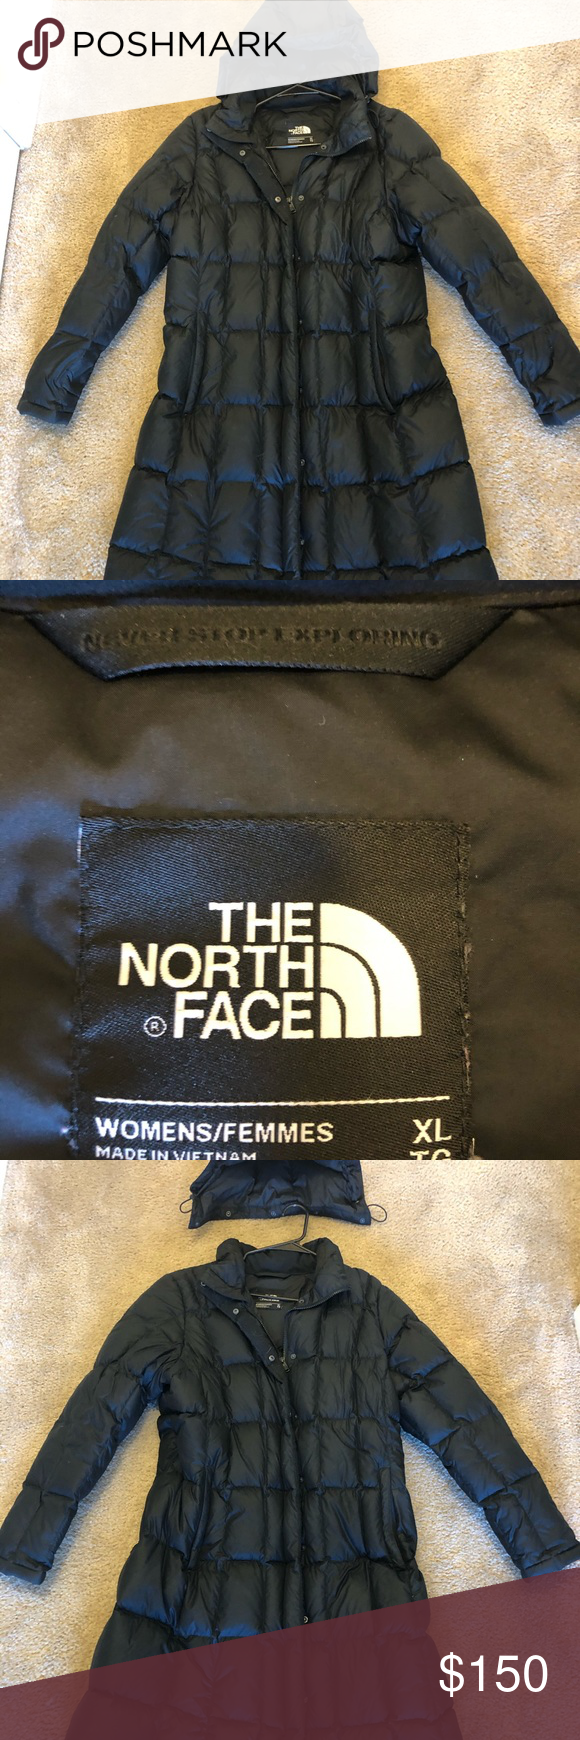 Women S Long North Face Puffer Jacket North Face Puffer Jacket The North Face Puffer Jacket Women [ 1740 x 580 Pixel ]